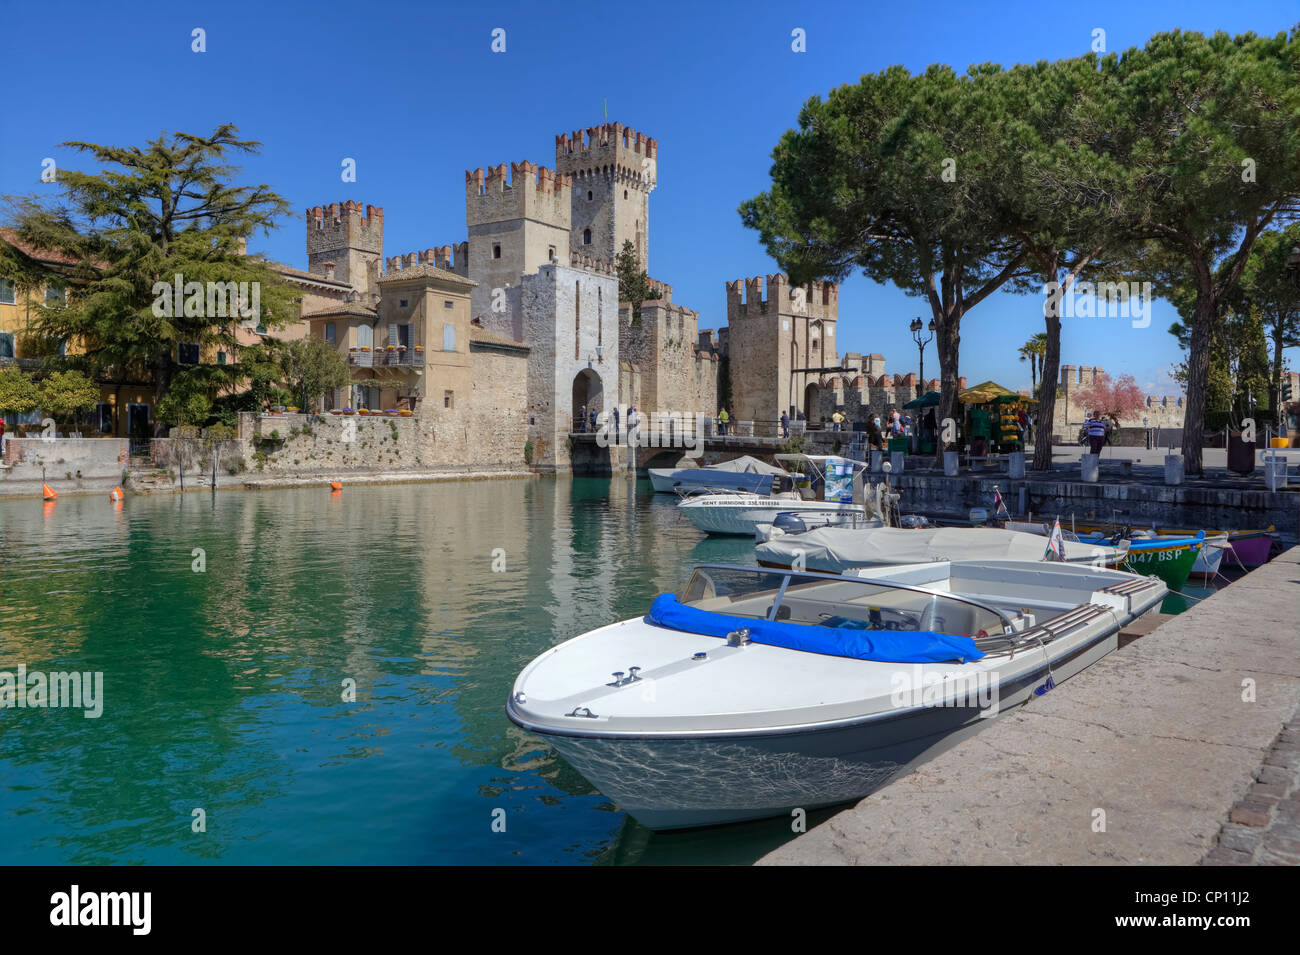 Scaliger Castle, Sirmione, Lombardy, Veneto, Italy - Stock Image